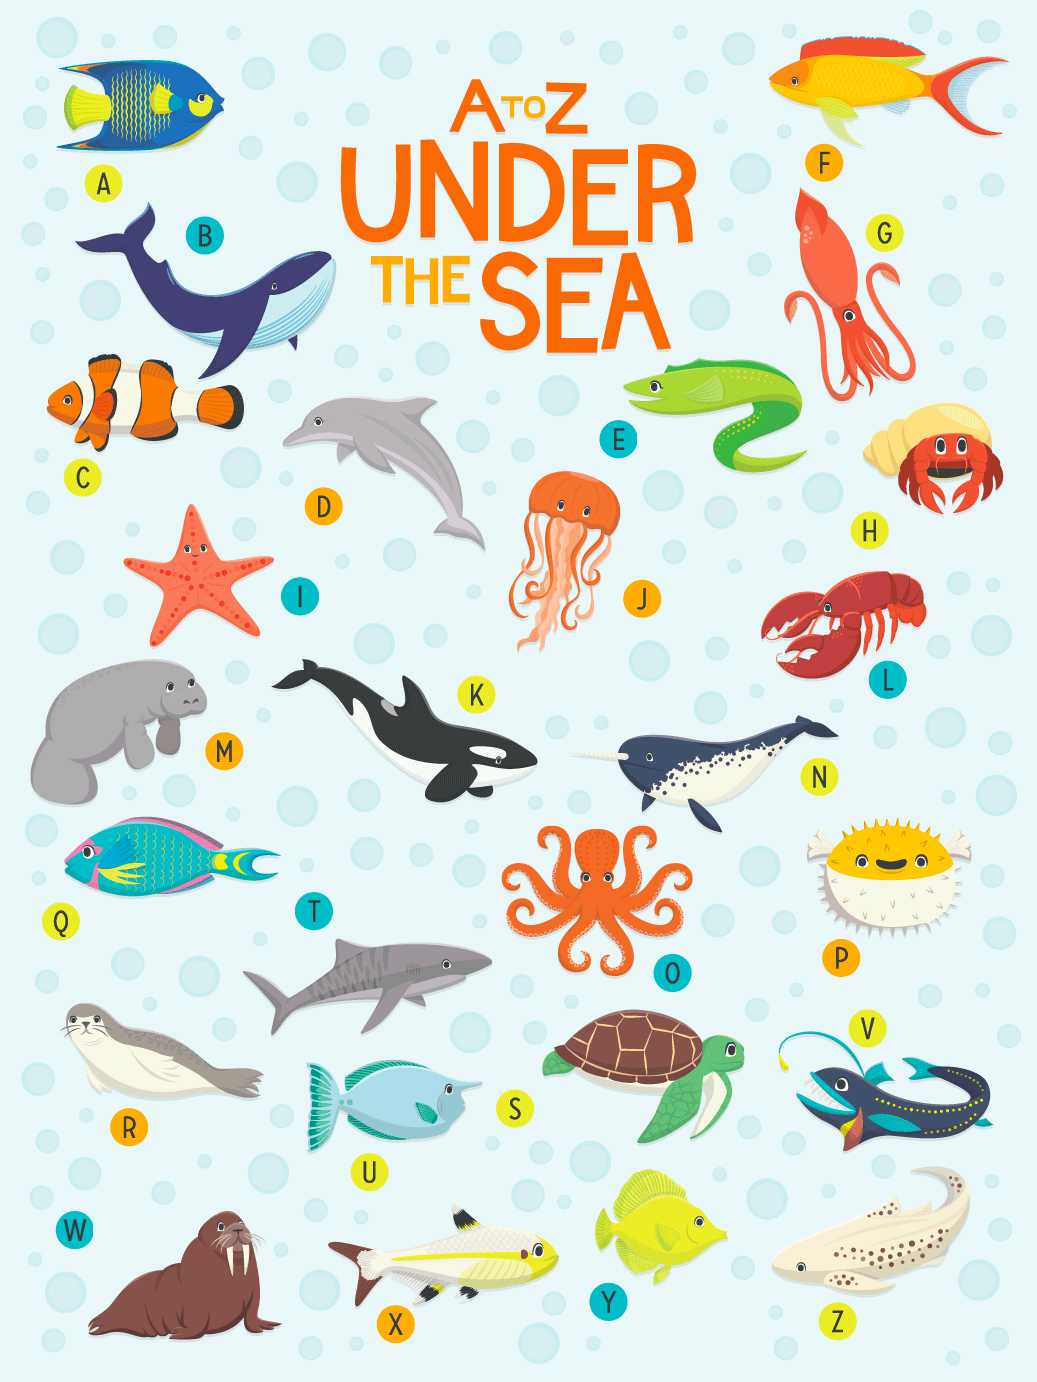 Can You Name These A-Z Sea Animals?